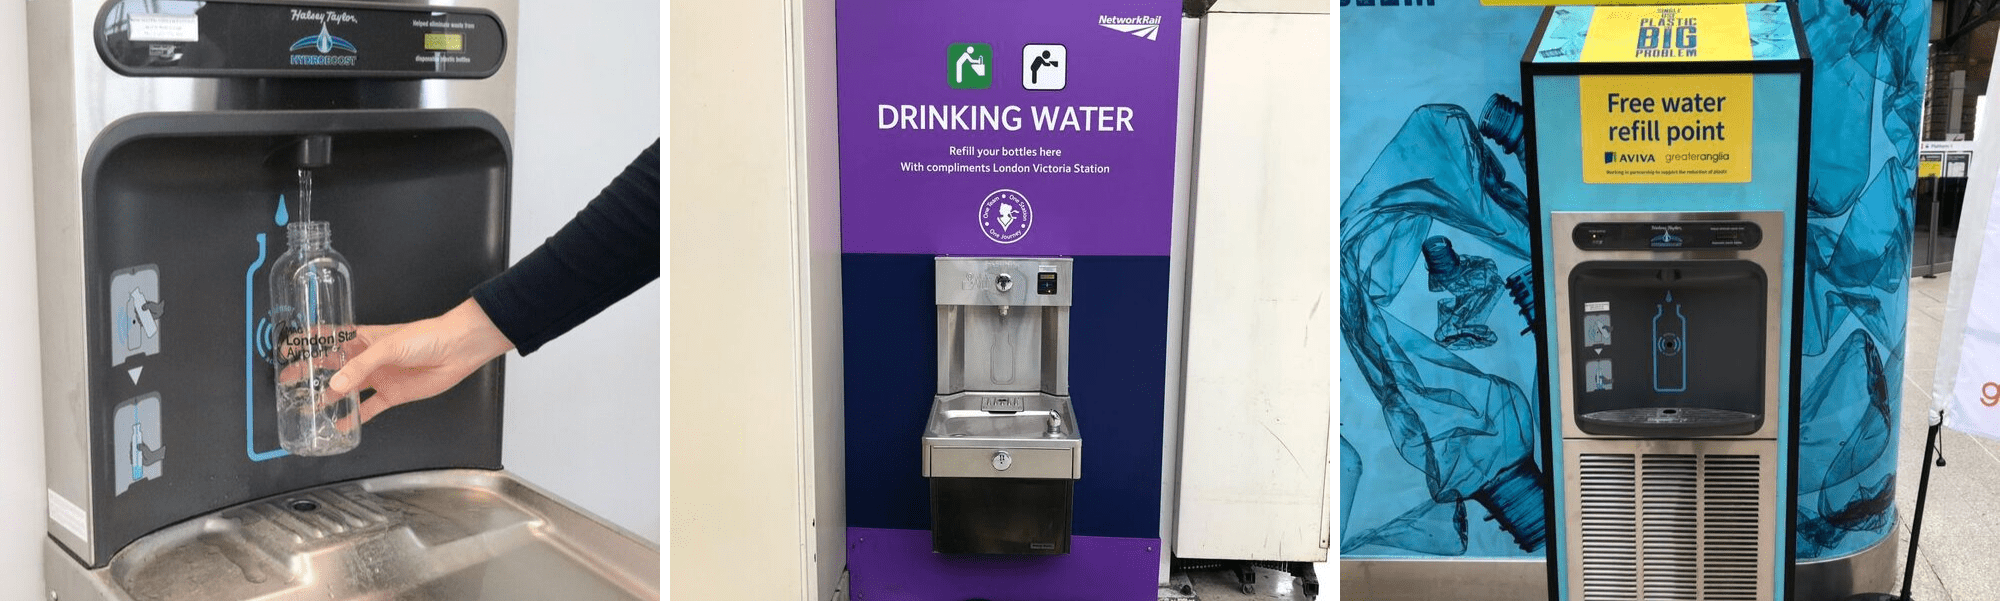 Wheelchair Accessible Bottle Refill Stations in Train Stations and Airports